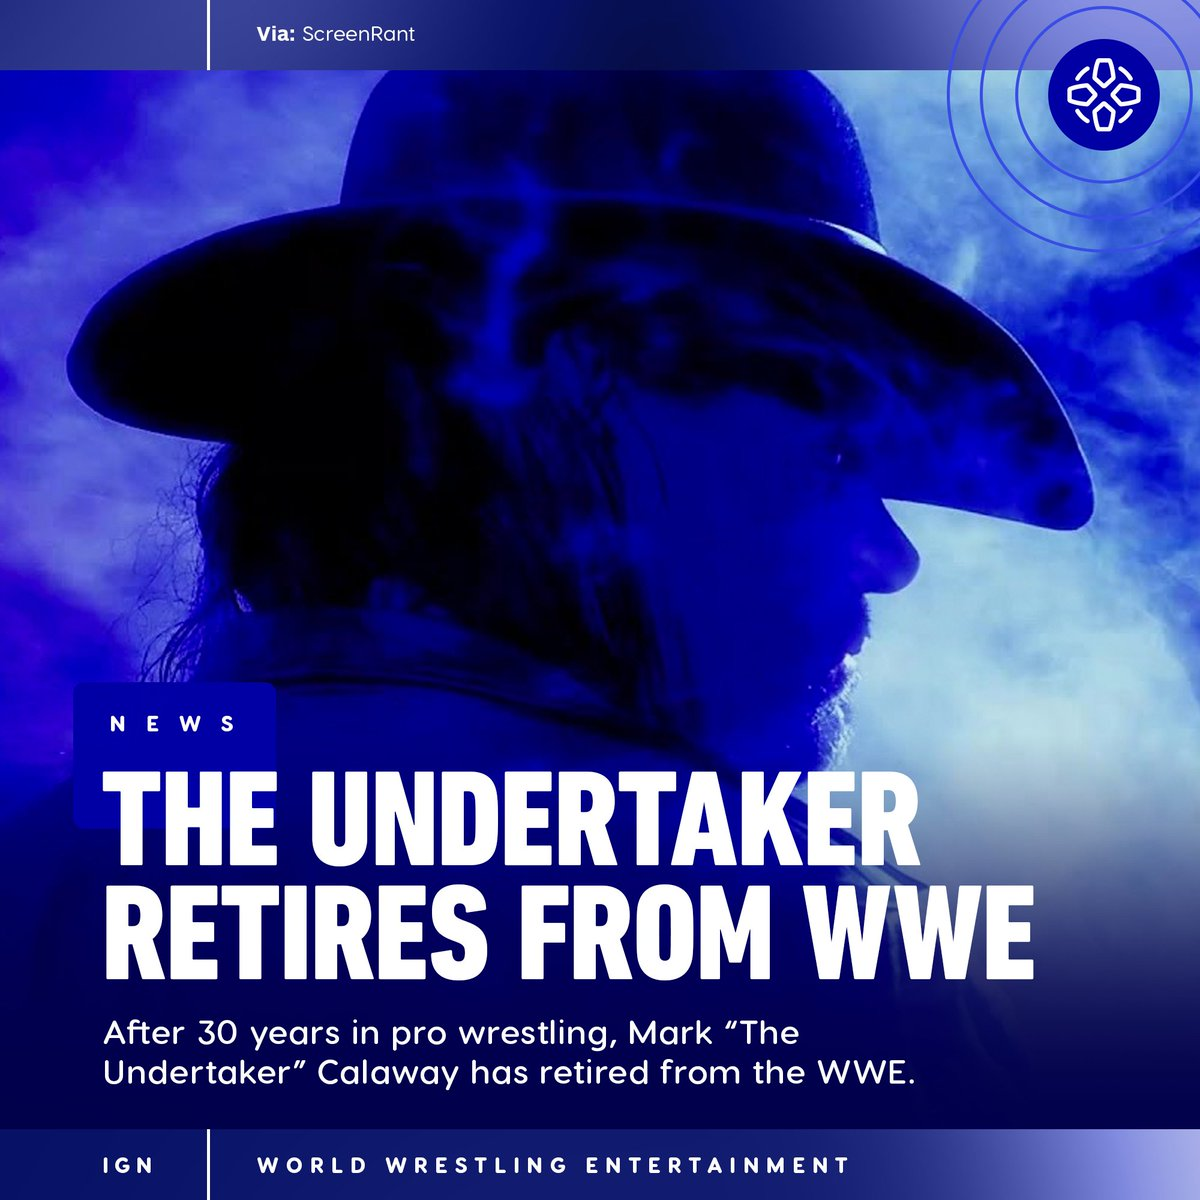 """In the WWE docuseries Undertaker: The Last Ride, Mark Calaway said his Boneyard Match with AJ Styles at WrestleMania 36 was the """"perfect ending"""" to his career. https://bit.ly/37WE9Cnpic.twitter.com/5LKS8n4Nqs  by Lance Storm"""